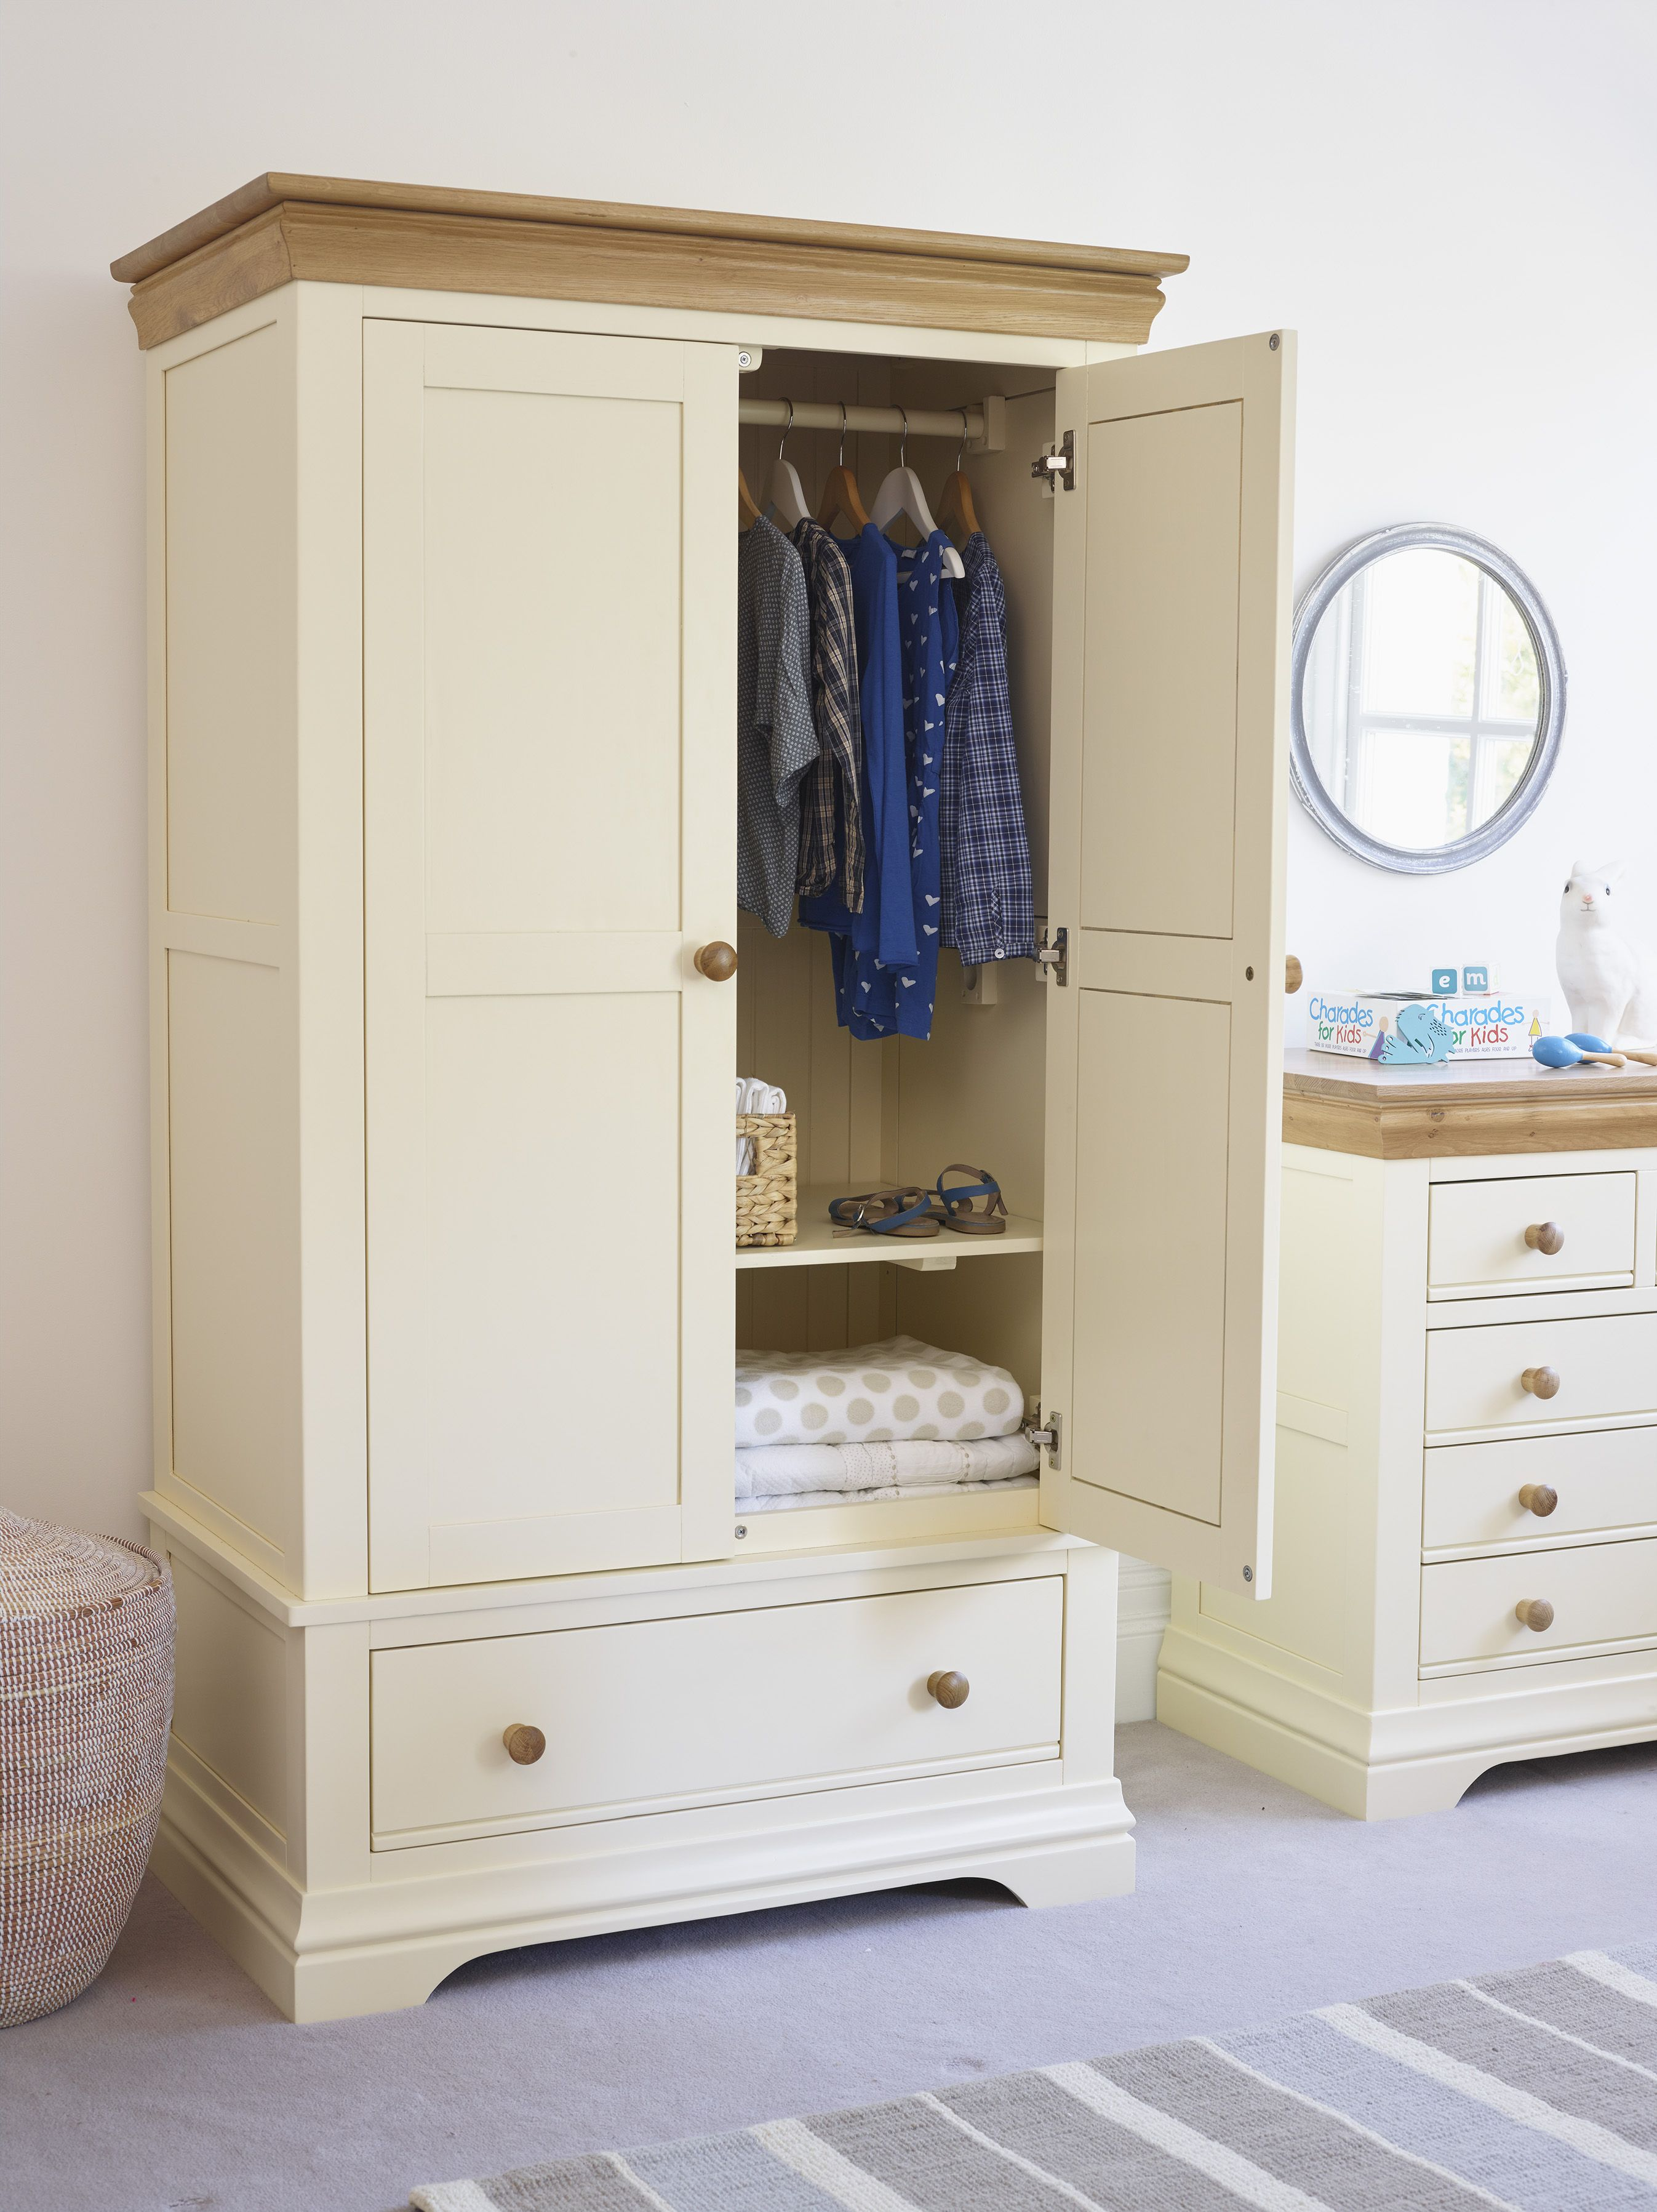 The Country Cottage Nursery Wardrobe